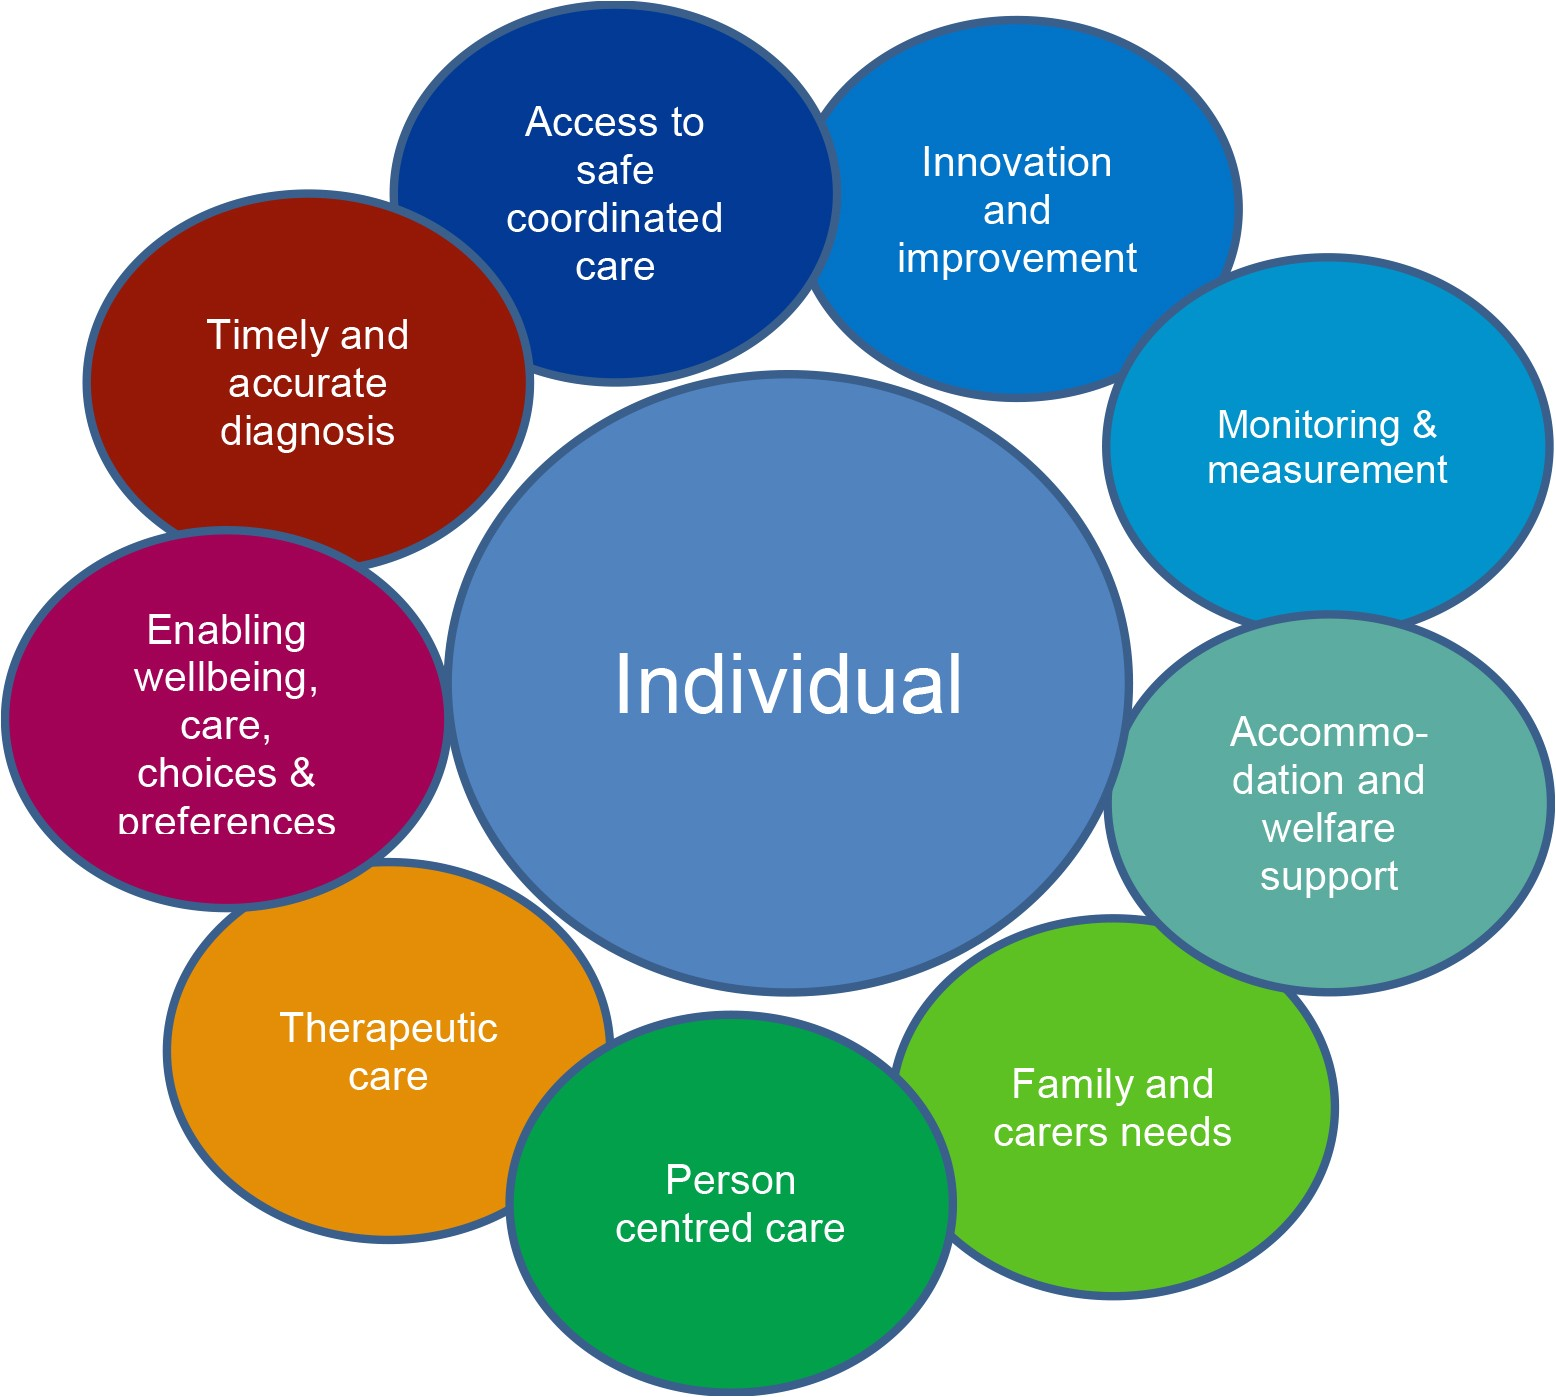 a person centred integrated care approach